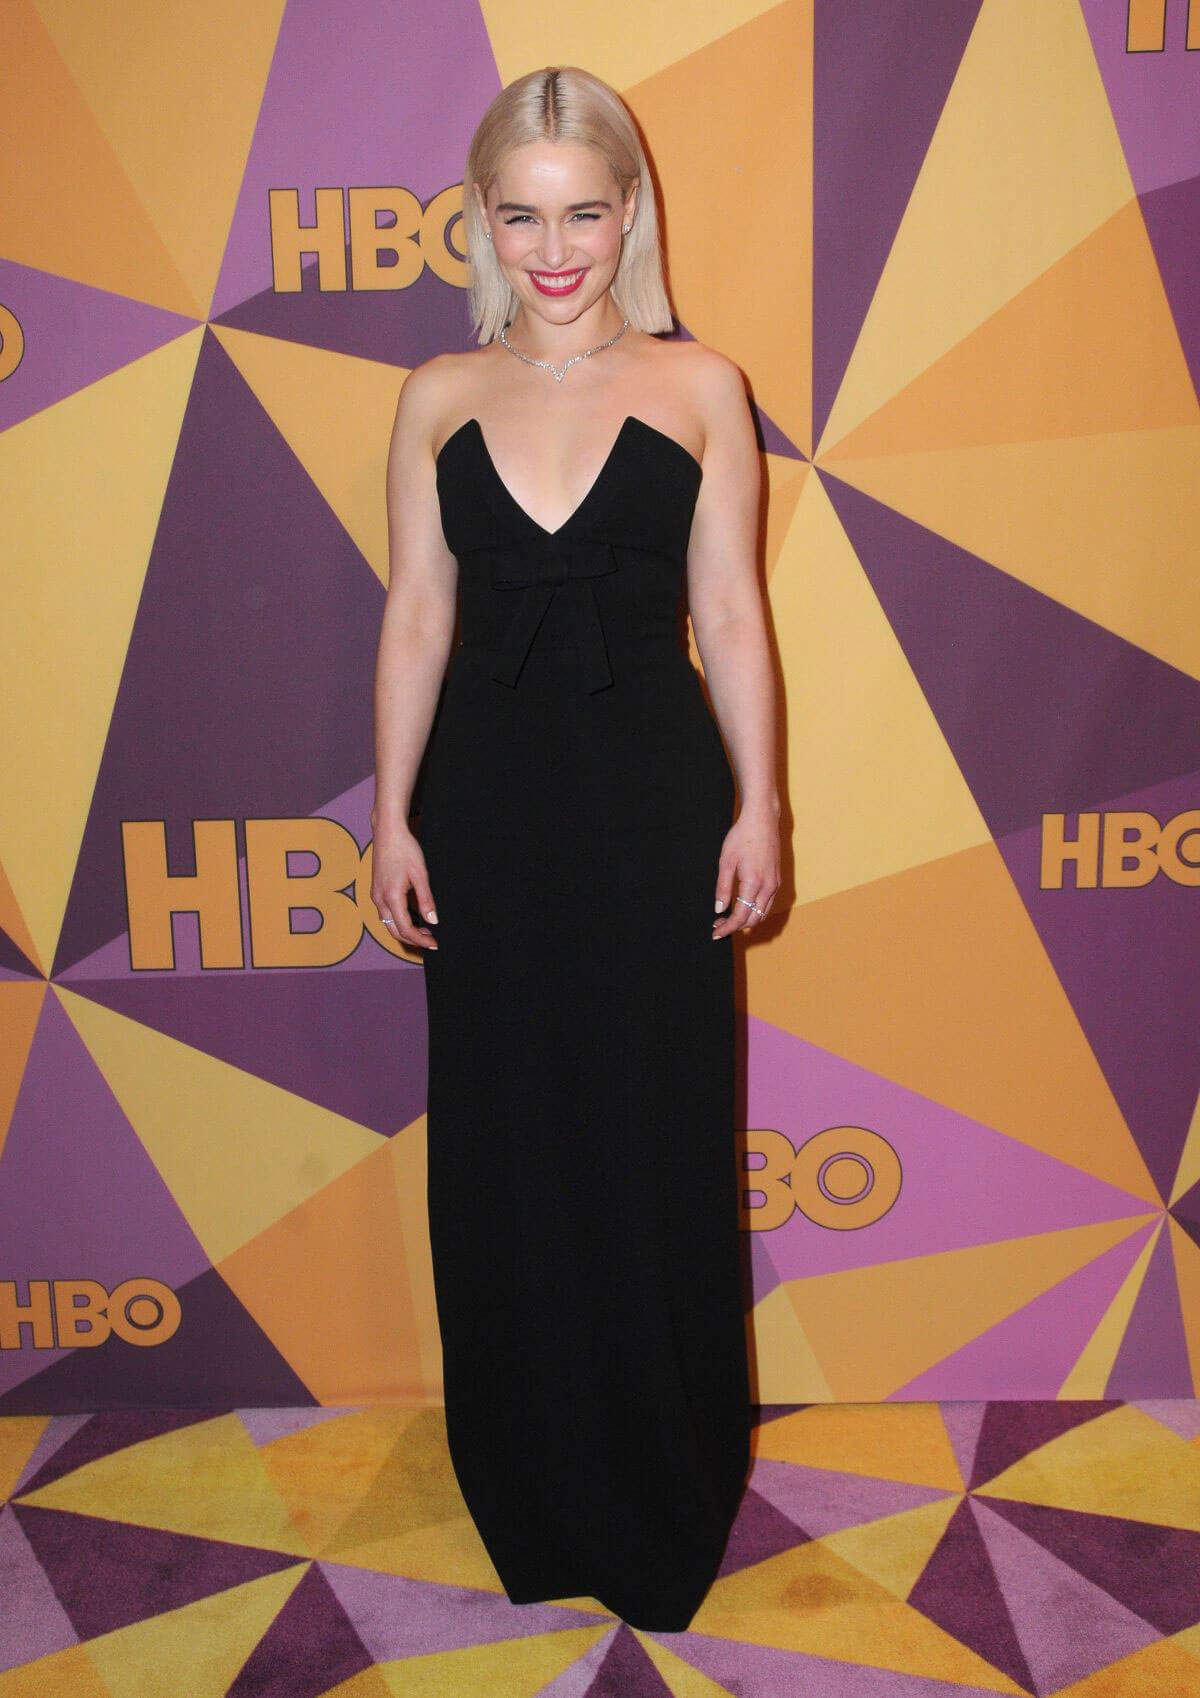 Emilia Clarke Stills at HBO's Golden Globe Awards After-party in Los Angeles 2018/01/07